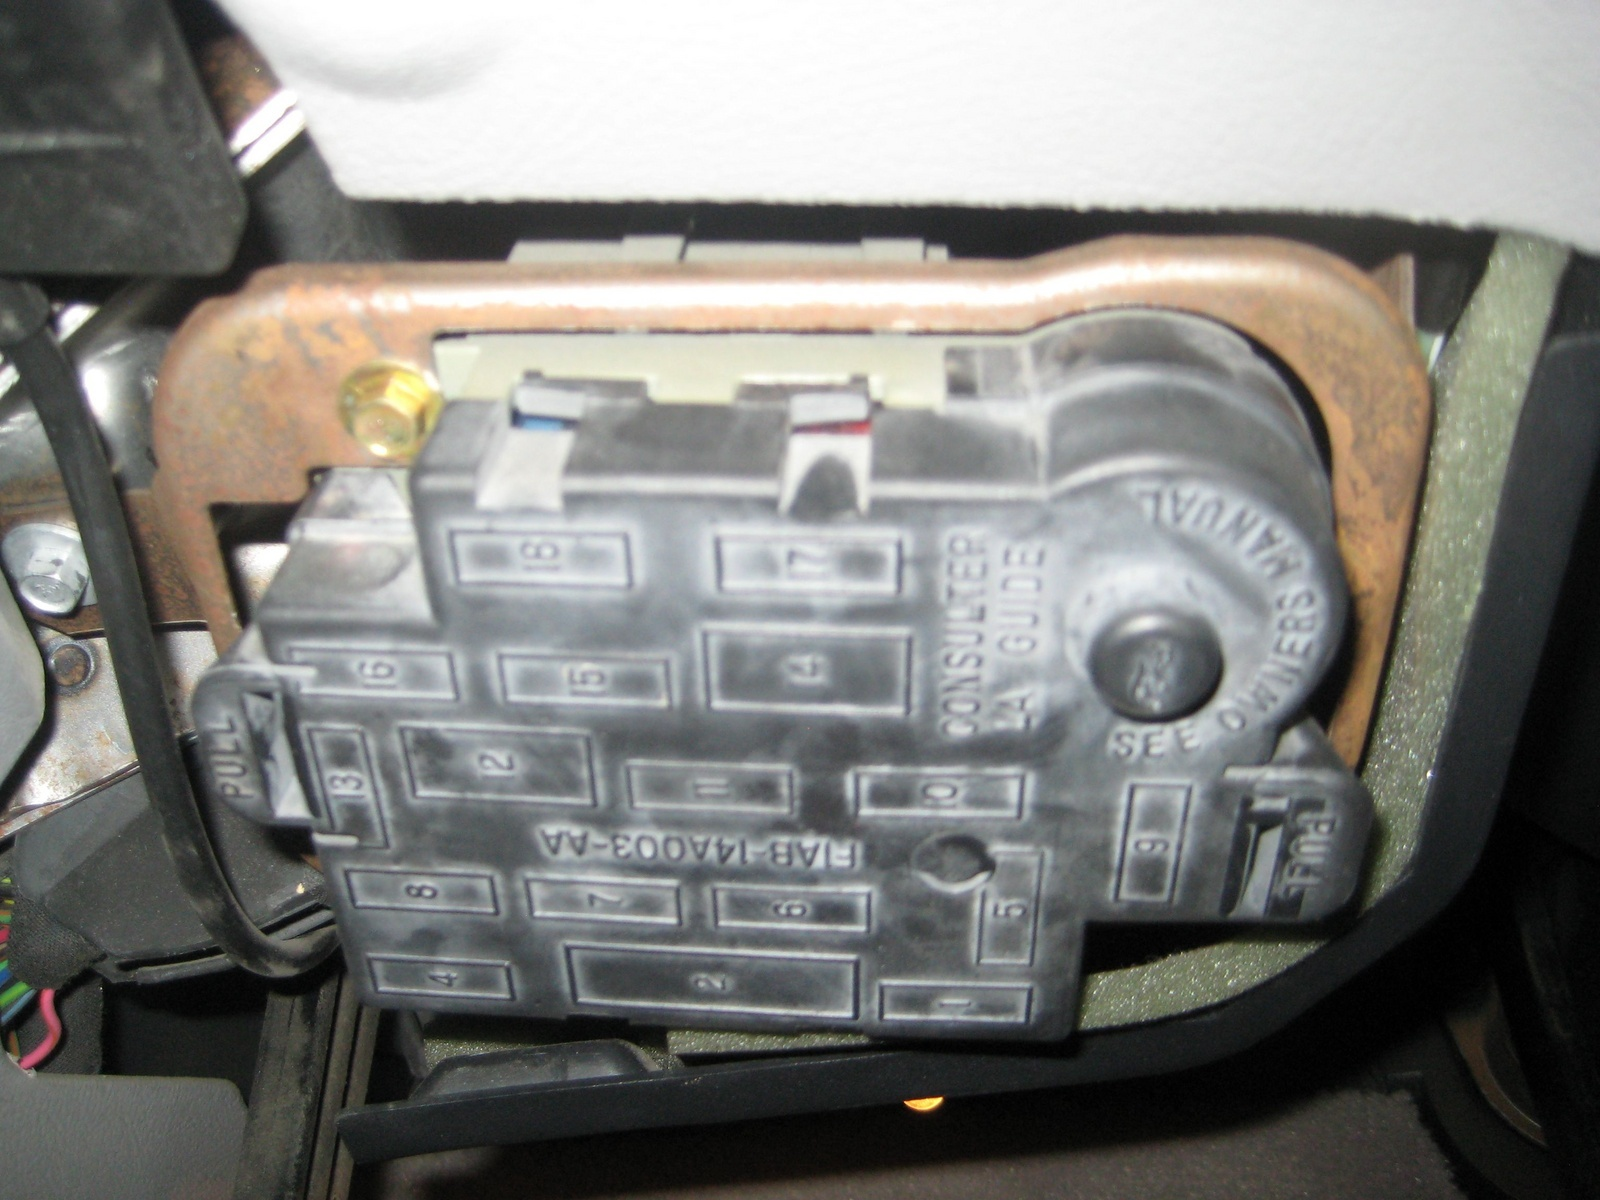 95 Grand Marquis Fuse Box Wiring Library Interior Marquid 6 Answers Mercury Questions How Do I Open The Inside